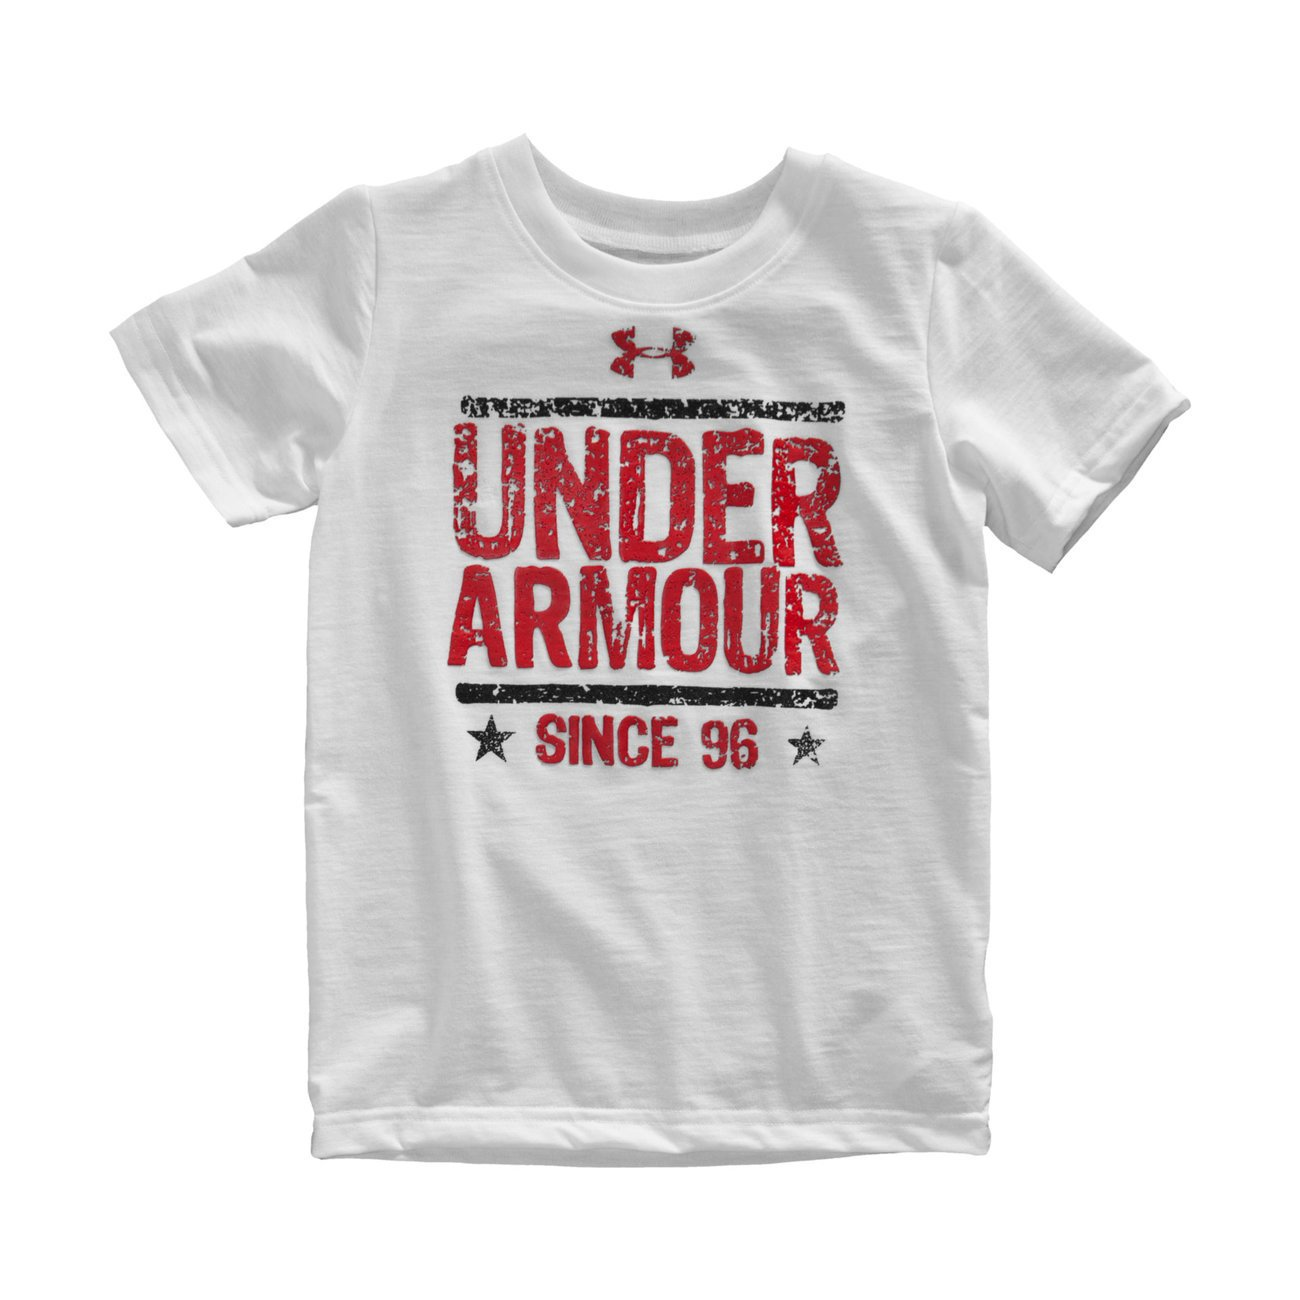 Under Armour Shirt Youth Size 18 Month